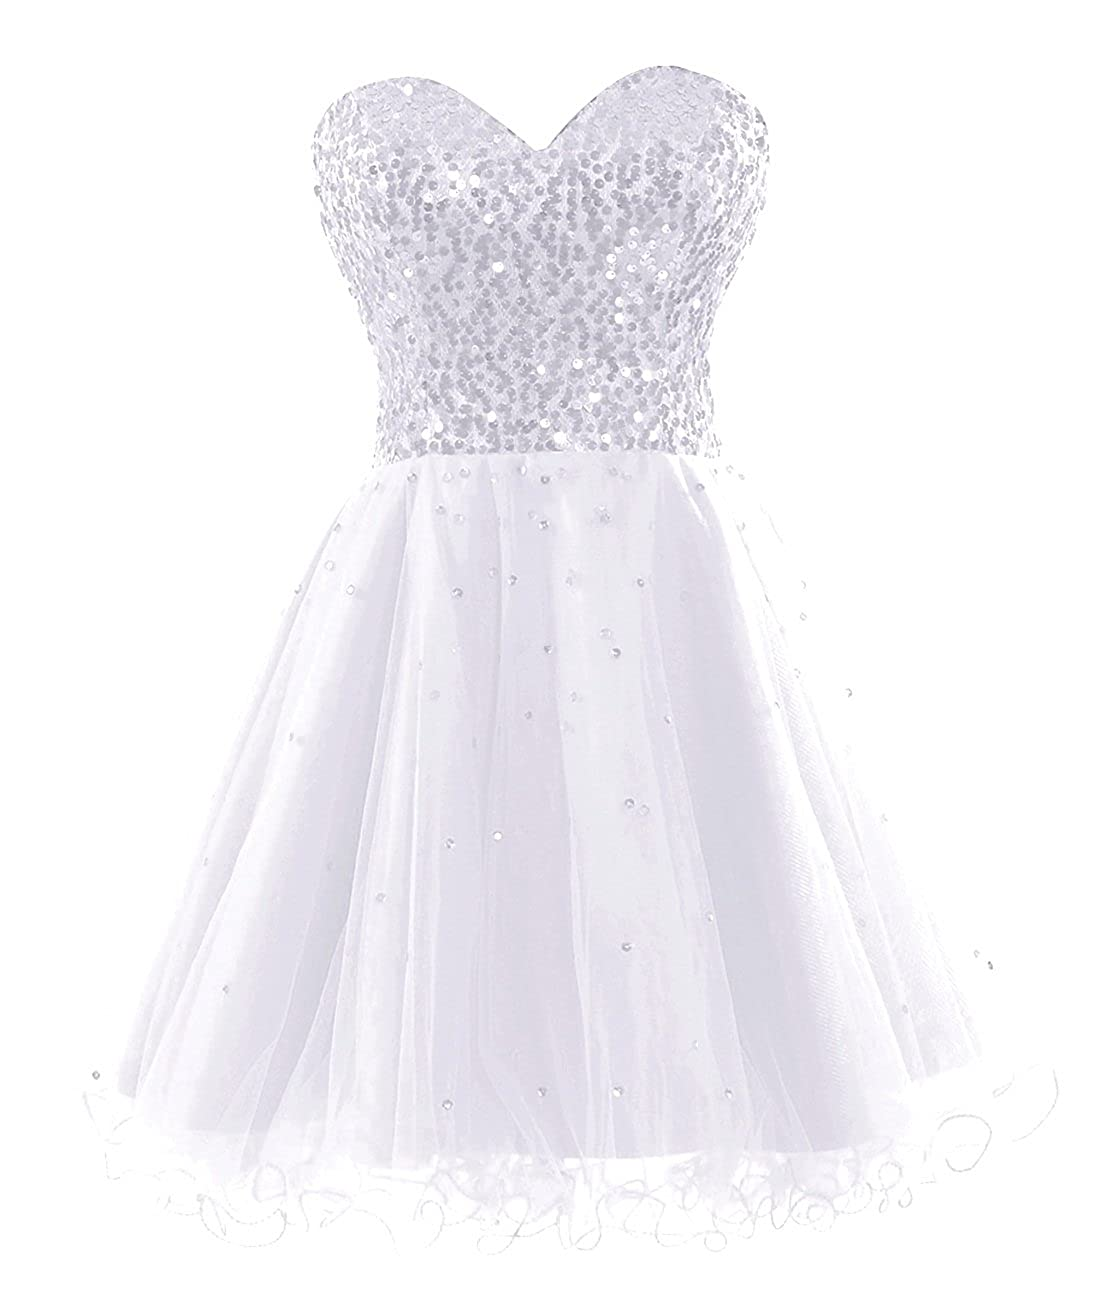 White Bess Bridal Women's Sequined Lace Up Tulle Short Prom Homecoming Dresses